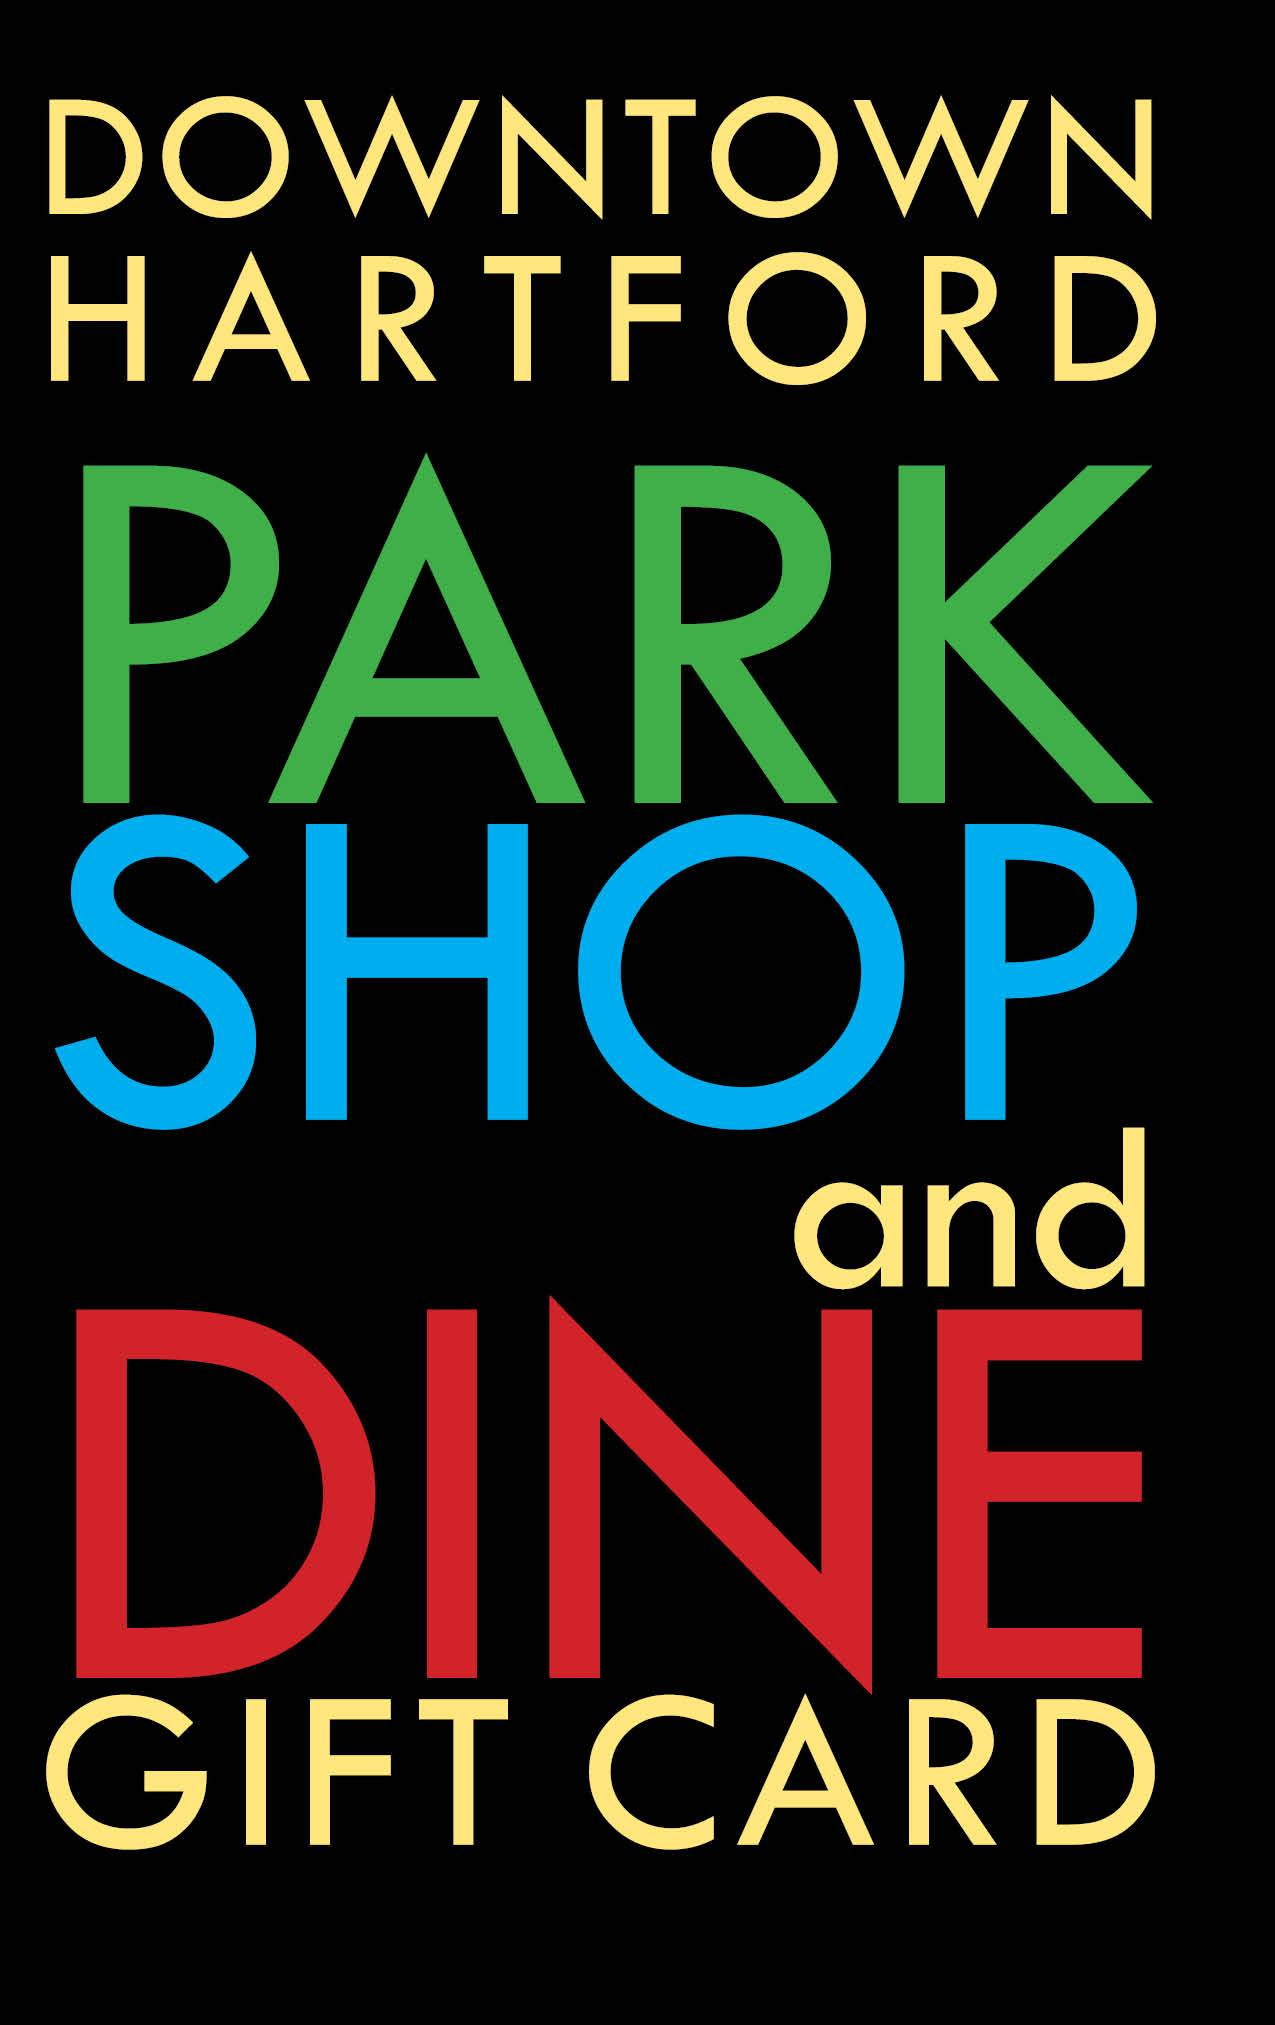 Park Shop Dine Hartford